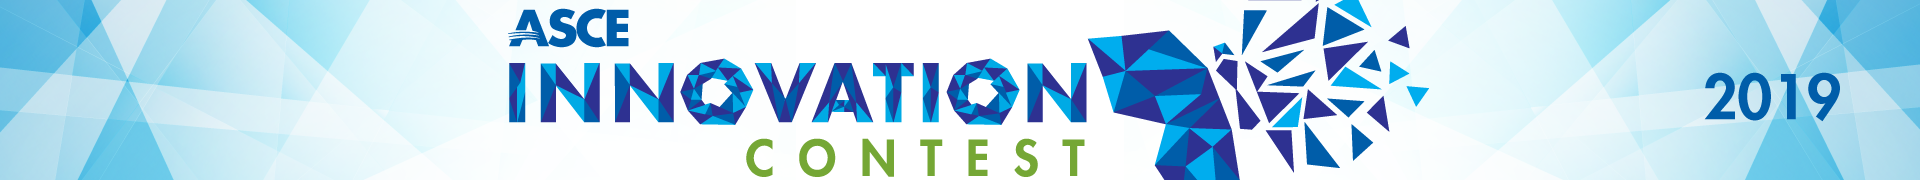 ASCE Innovation Contest 2019 Event Banner